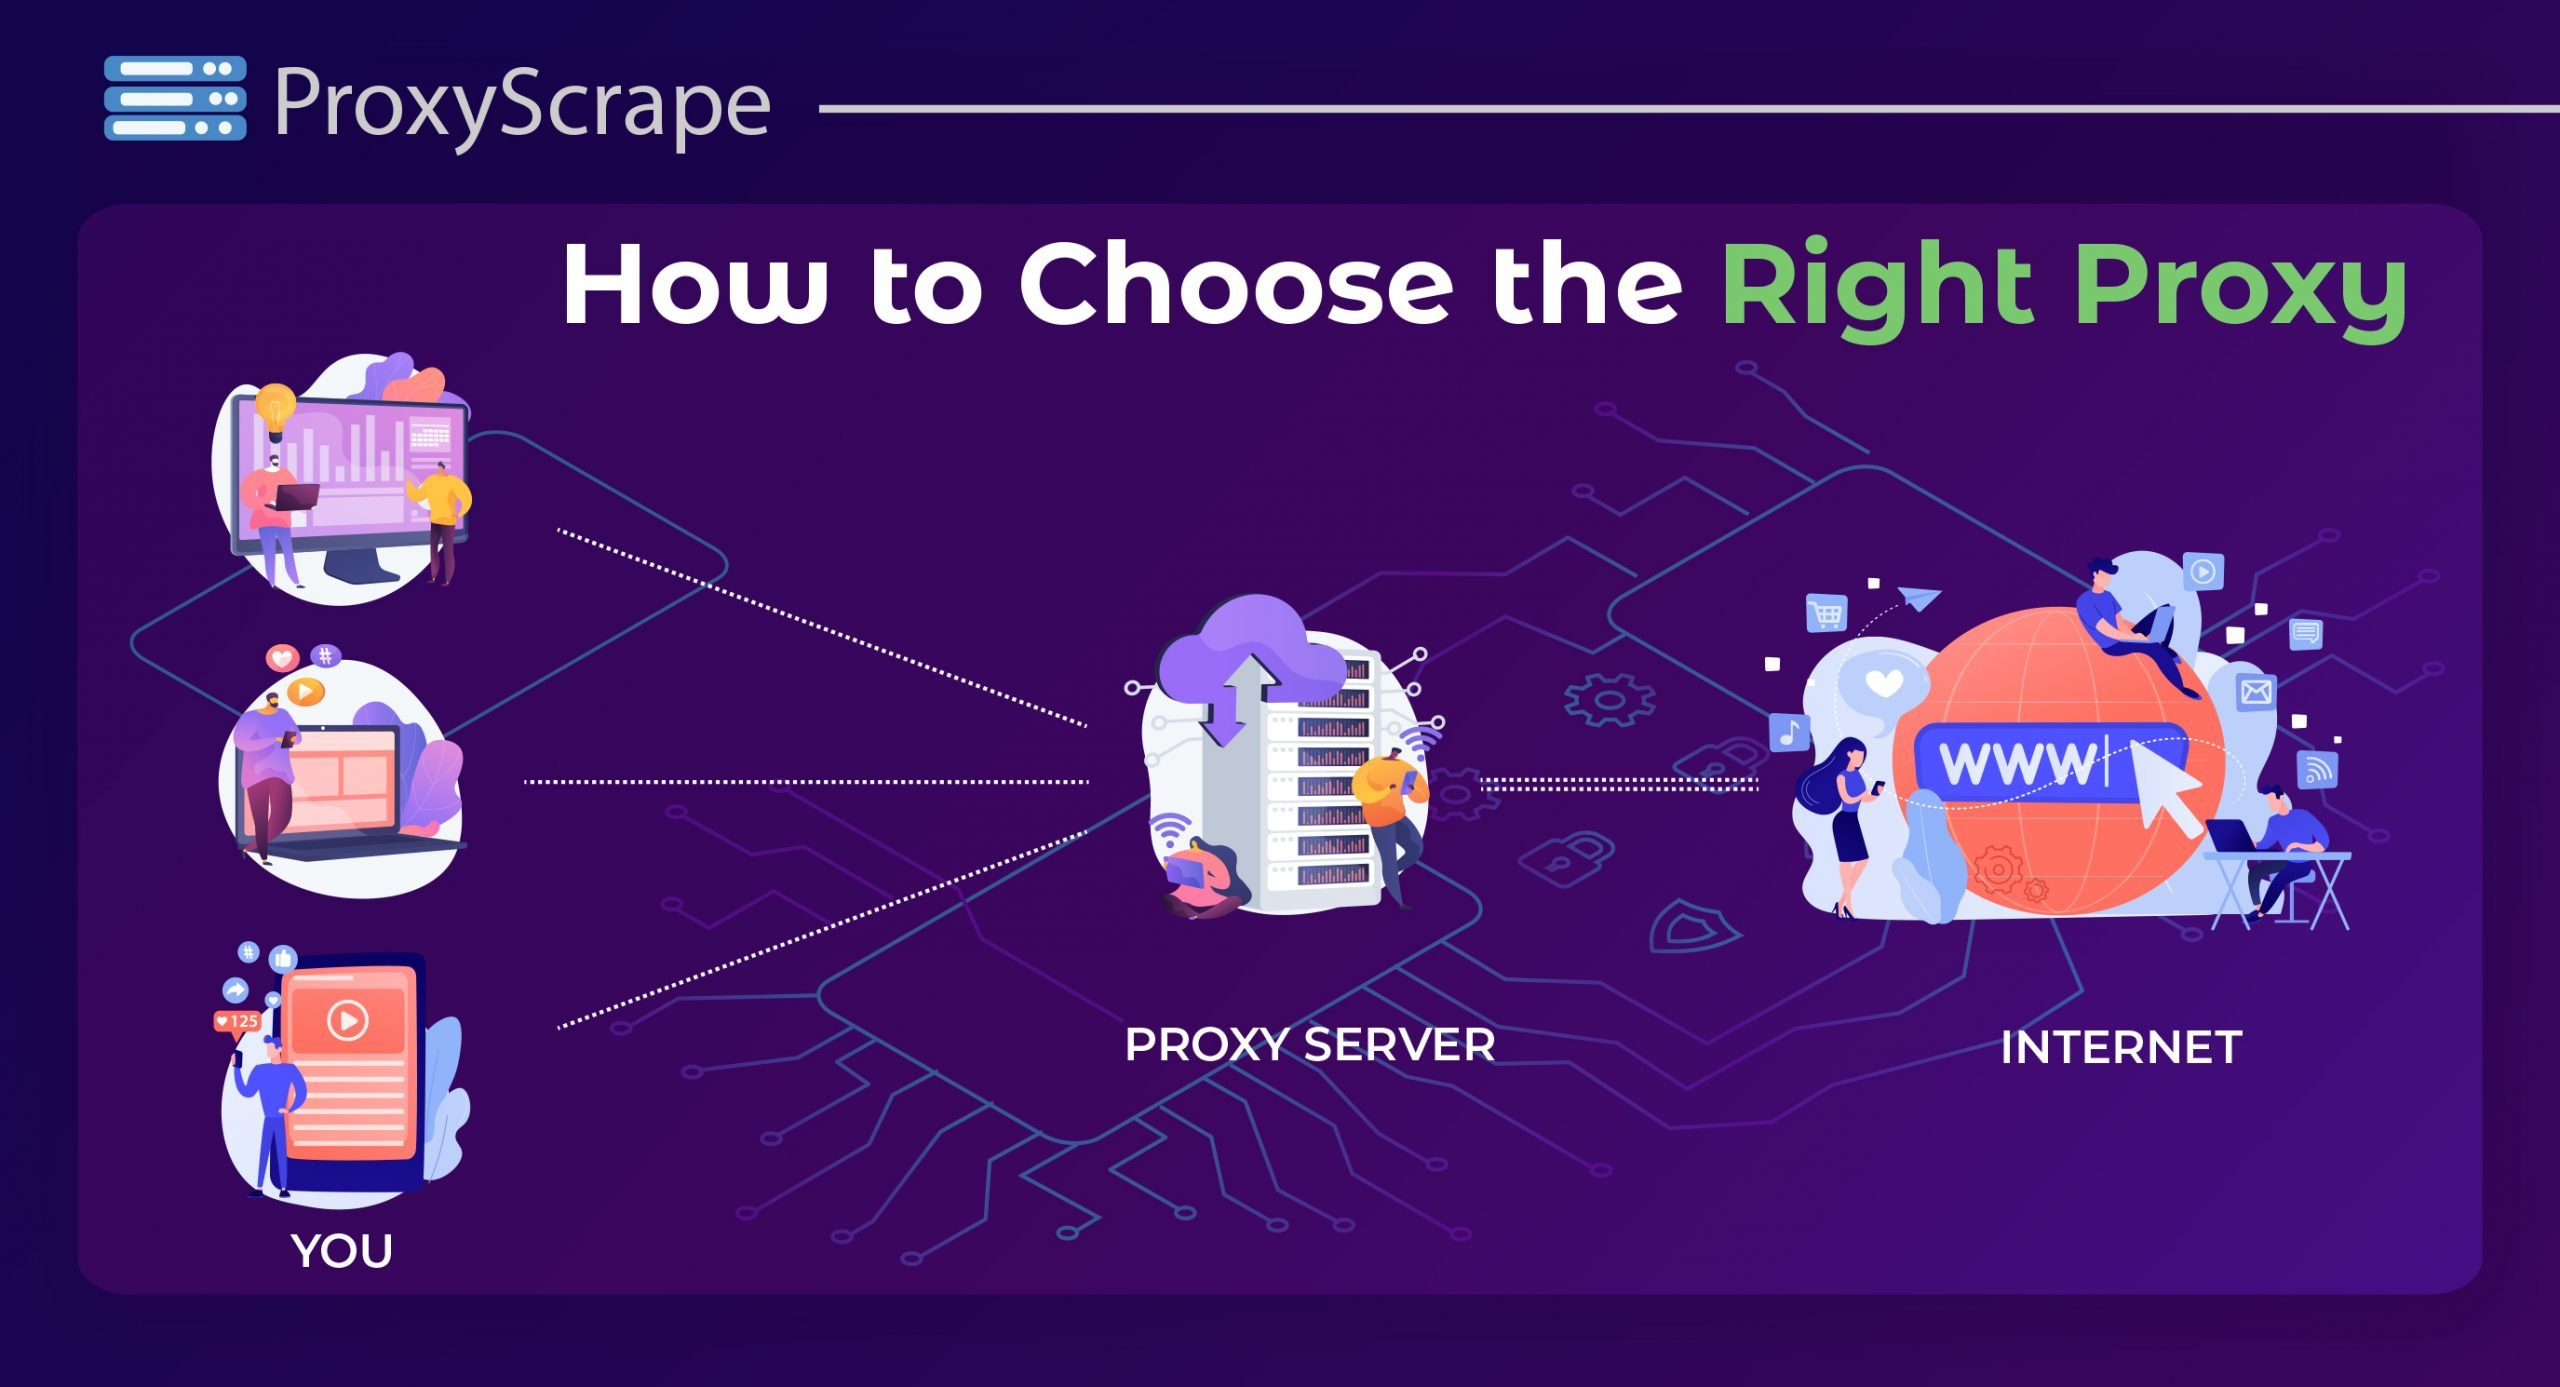 How to choose the right proxy